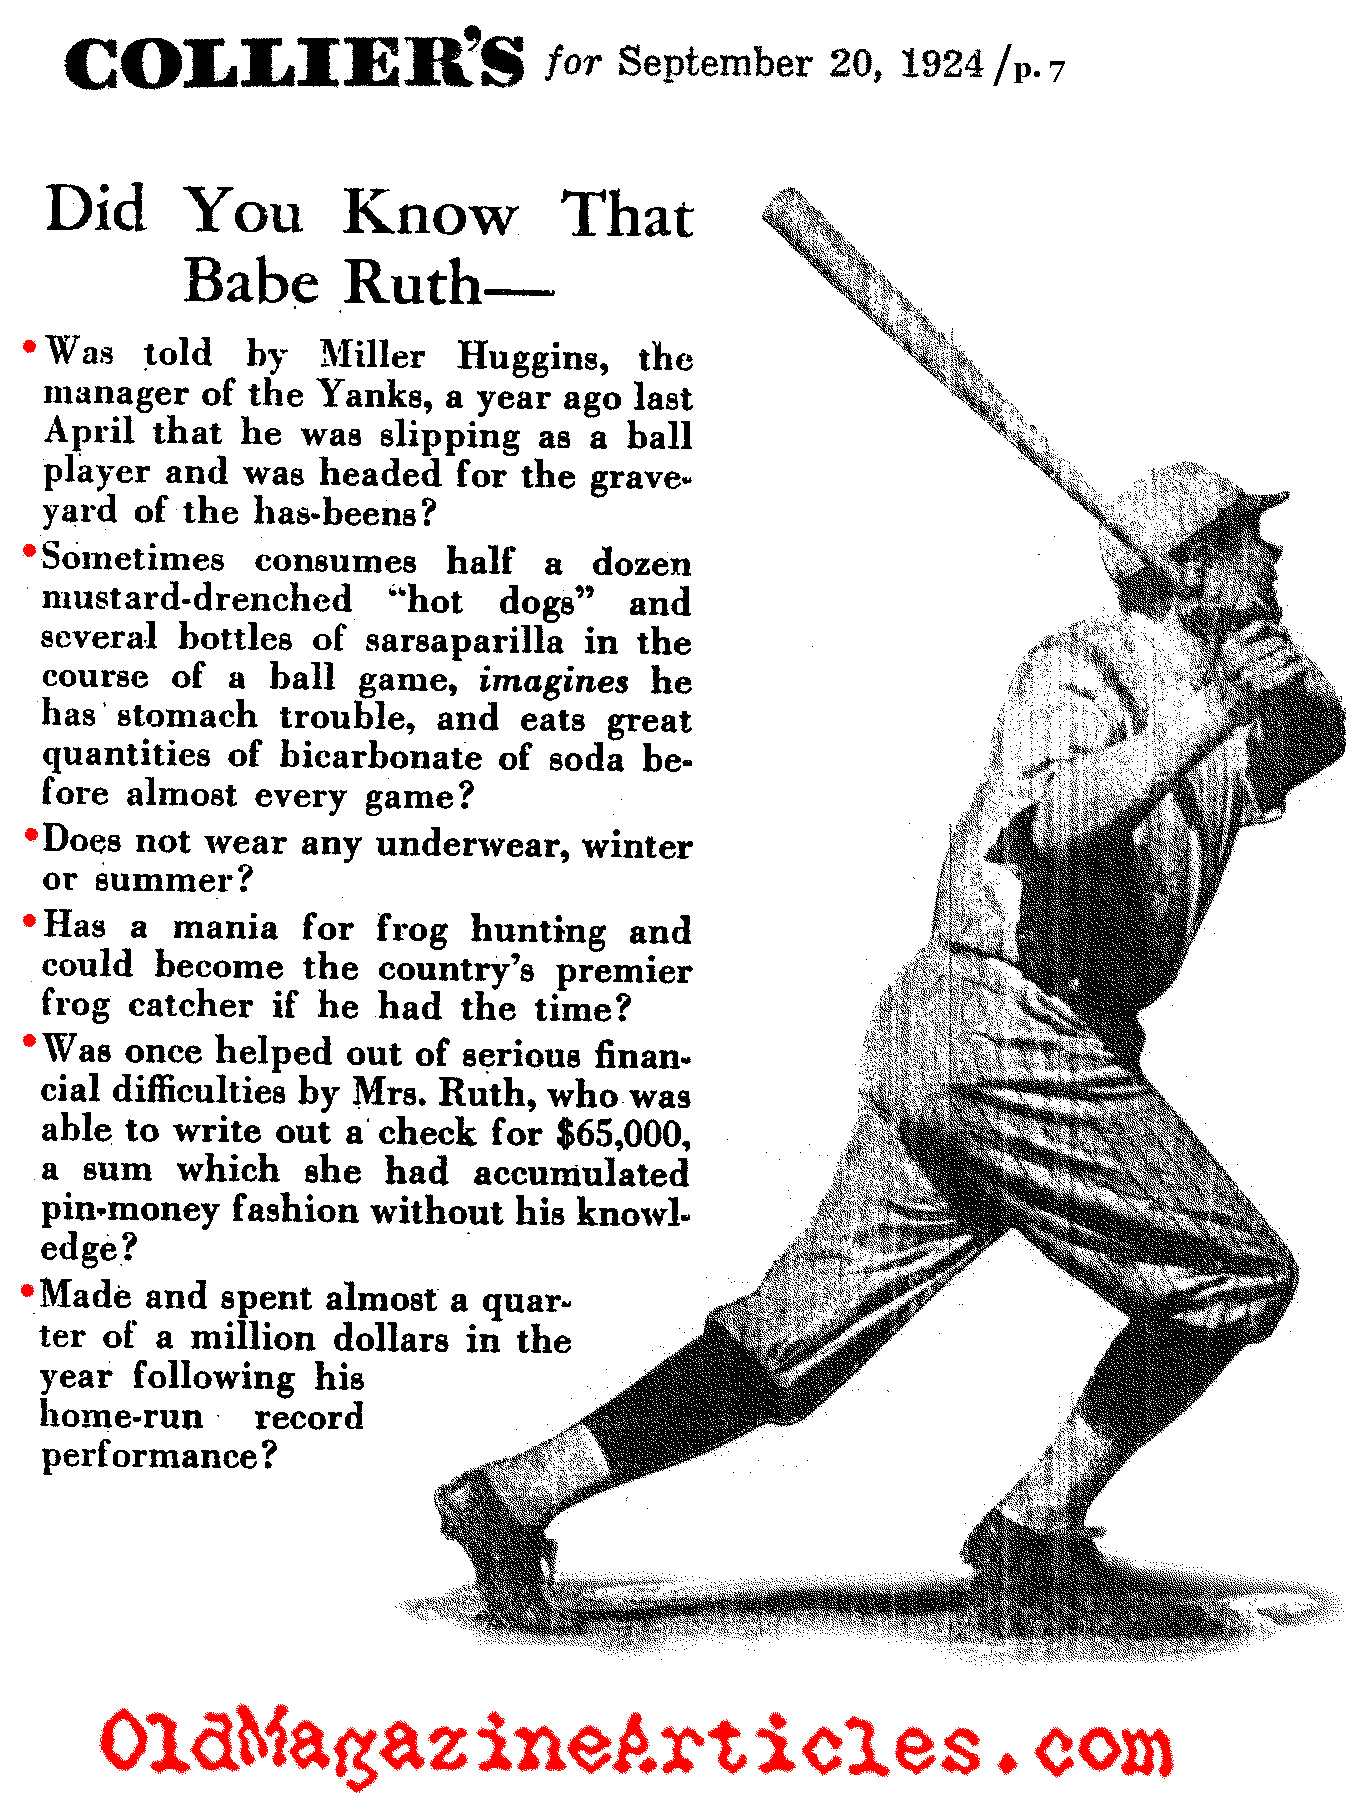 babe ruth essay conclusion And research papers 17-7-2015 one of the more curious rulings the supreme court handed down last month babe ruth essay conclusion and examines a.